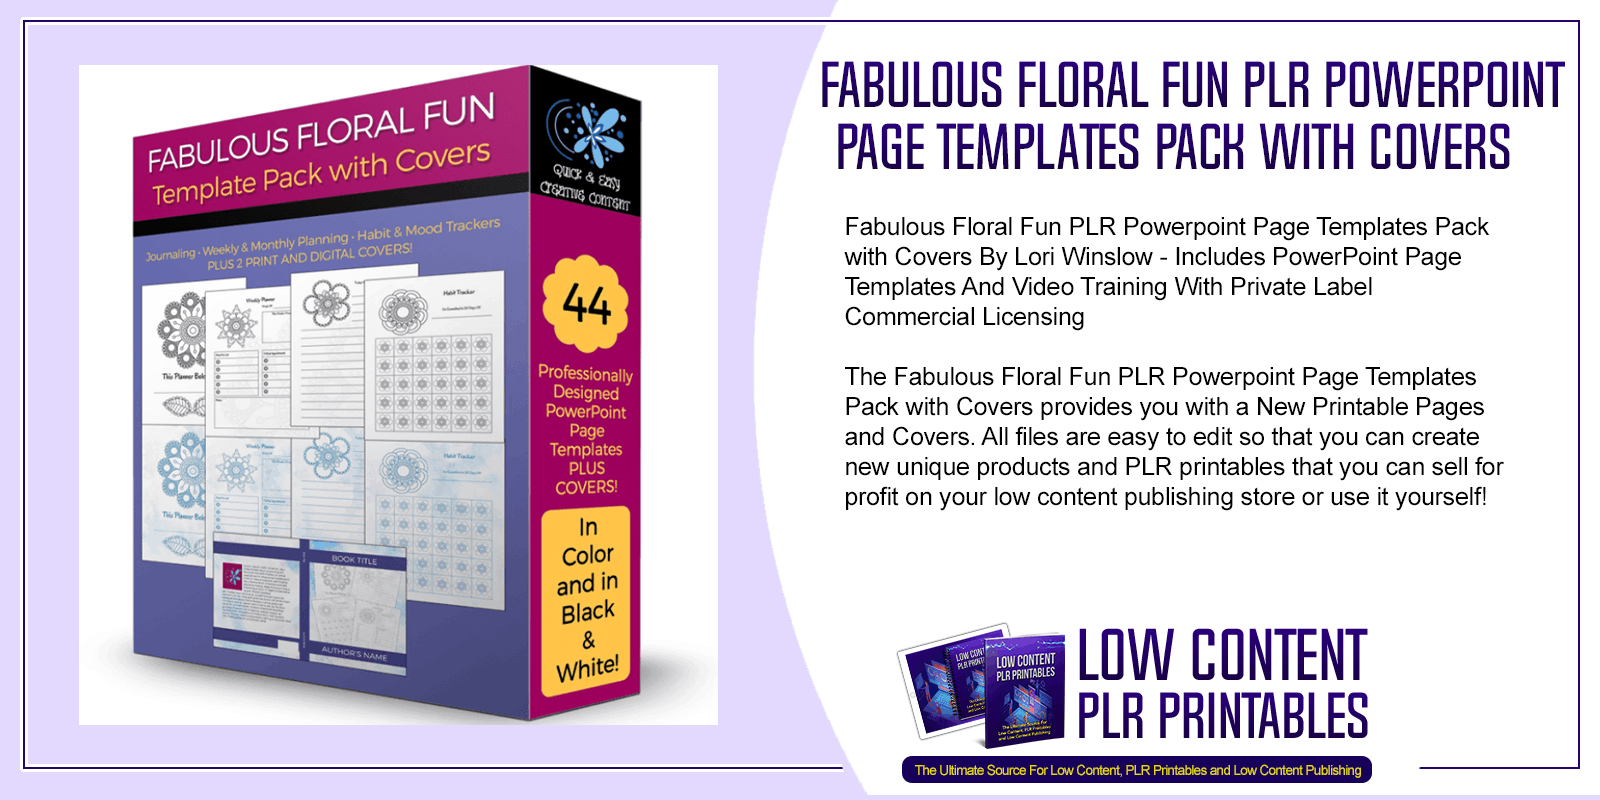 Fabulous Floral Fun PLR Powerpoint Page Templates Pack with Covers